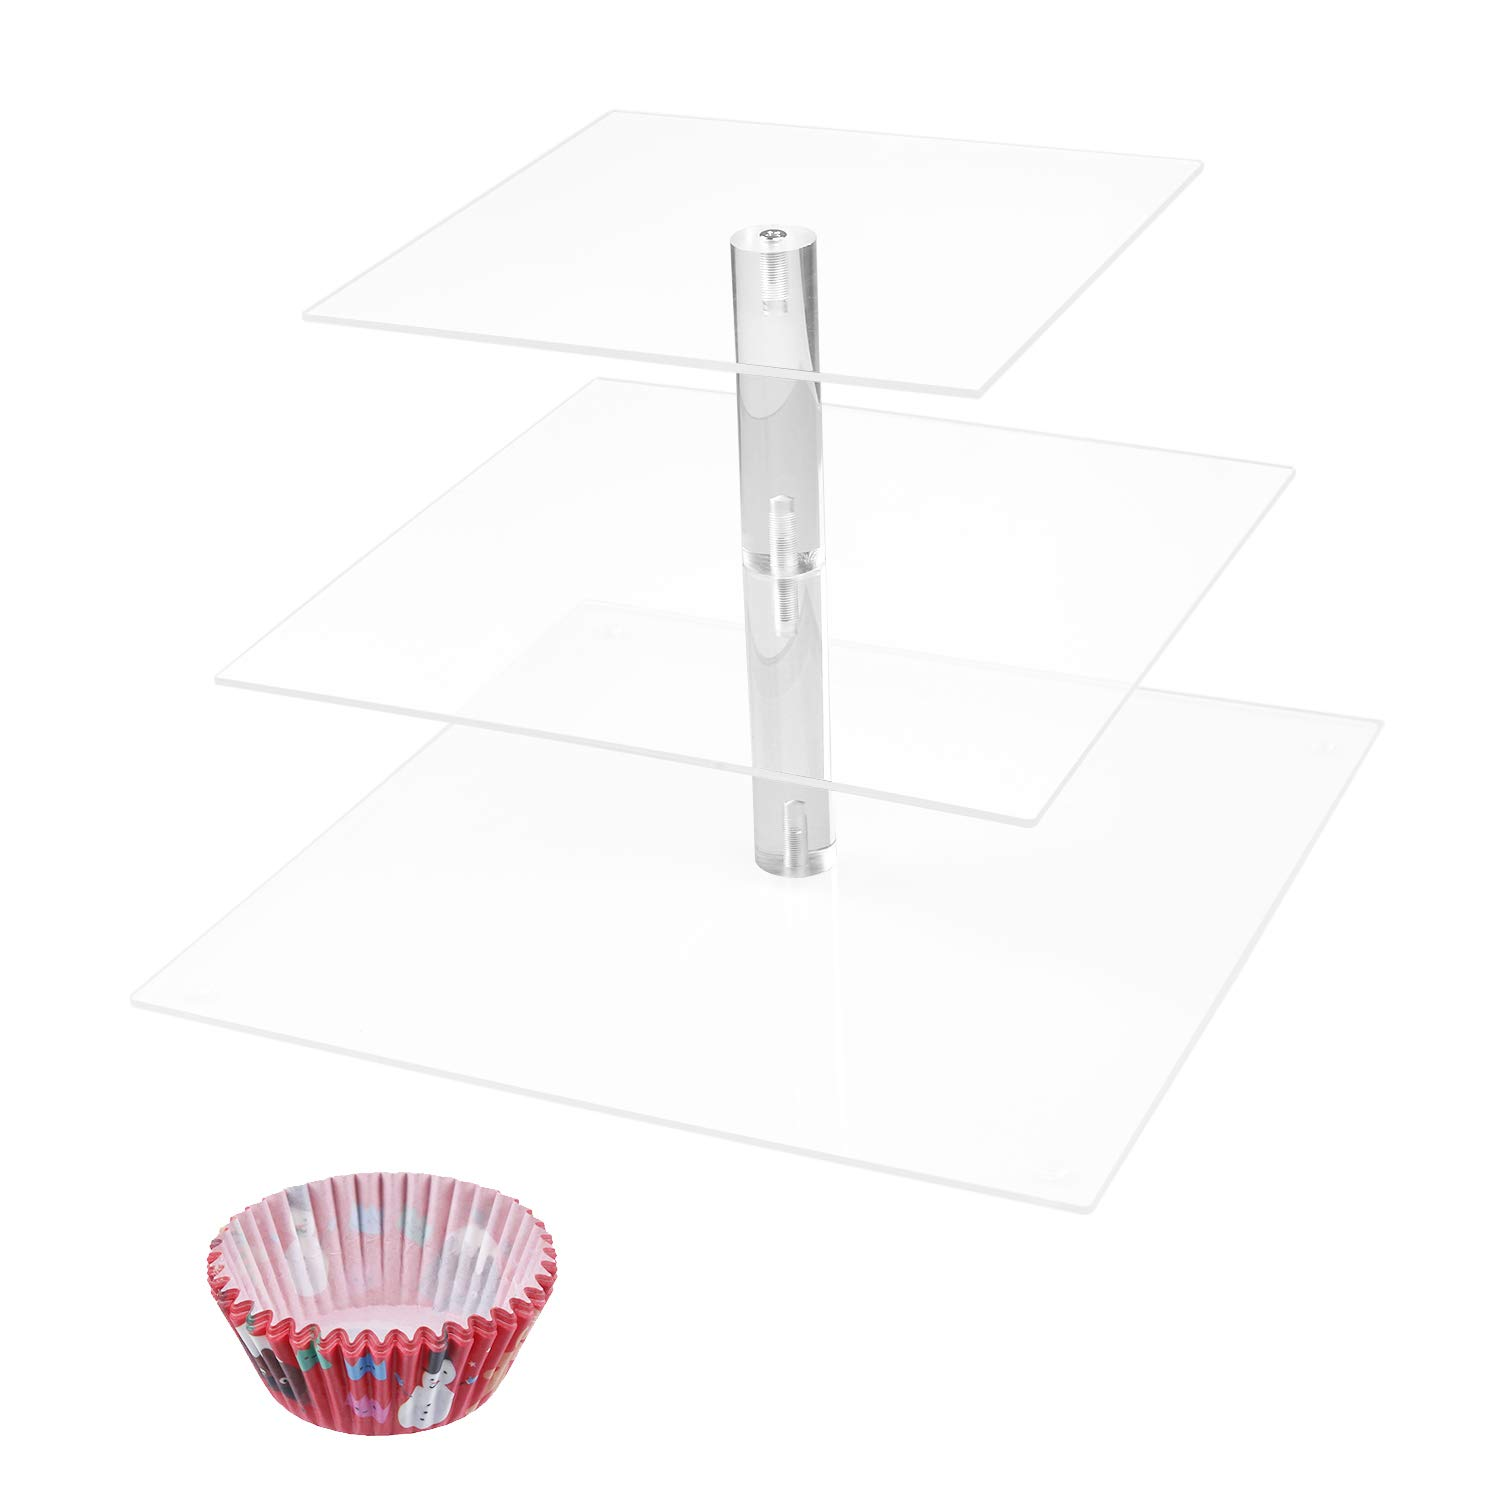 Cupcake Display Stand - 3 Tier Square Cake Stand with 50-piece Disposable Cups - for Weddings, Pastries, Birthday, Graduation